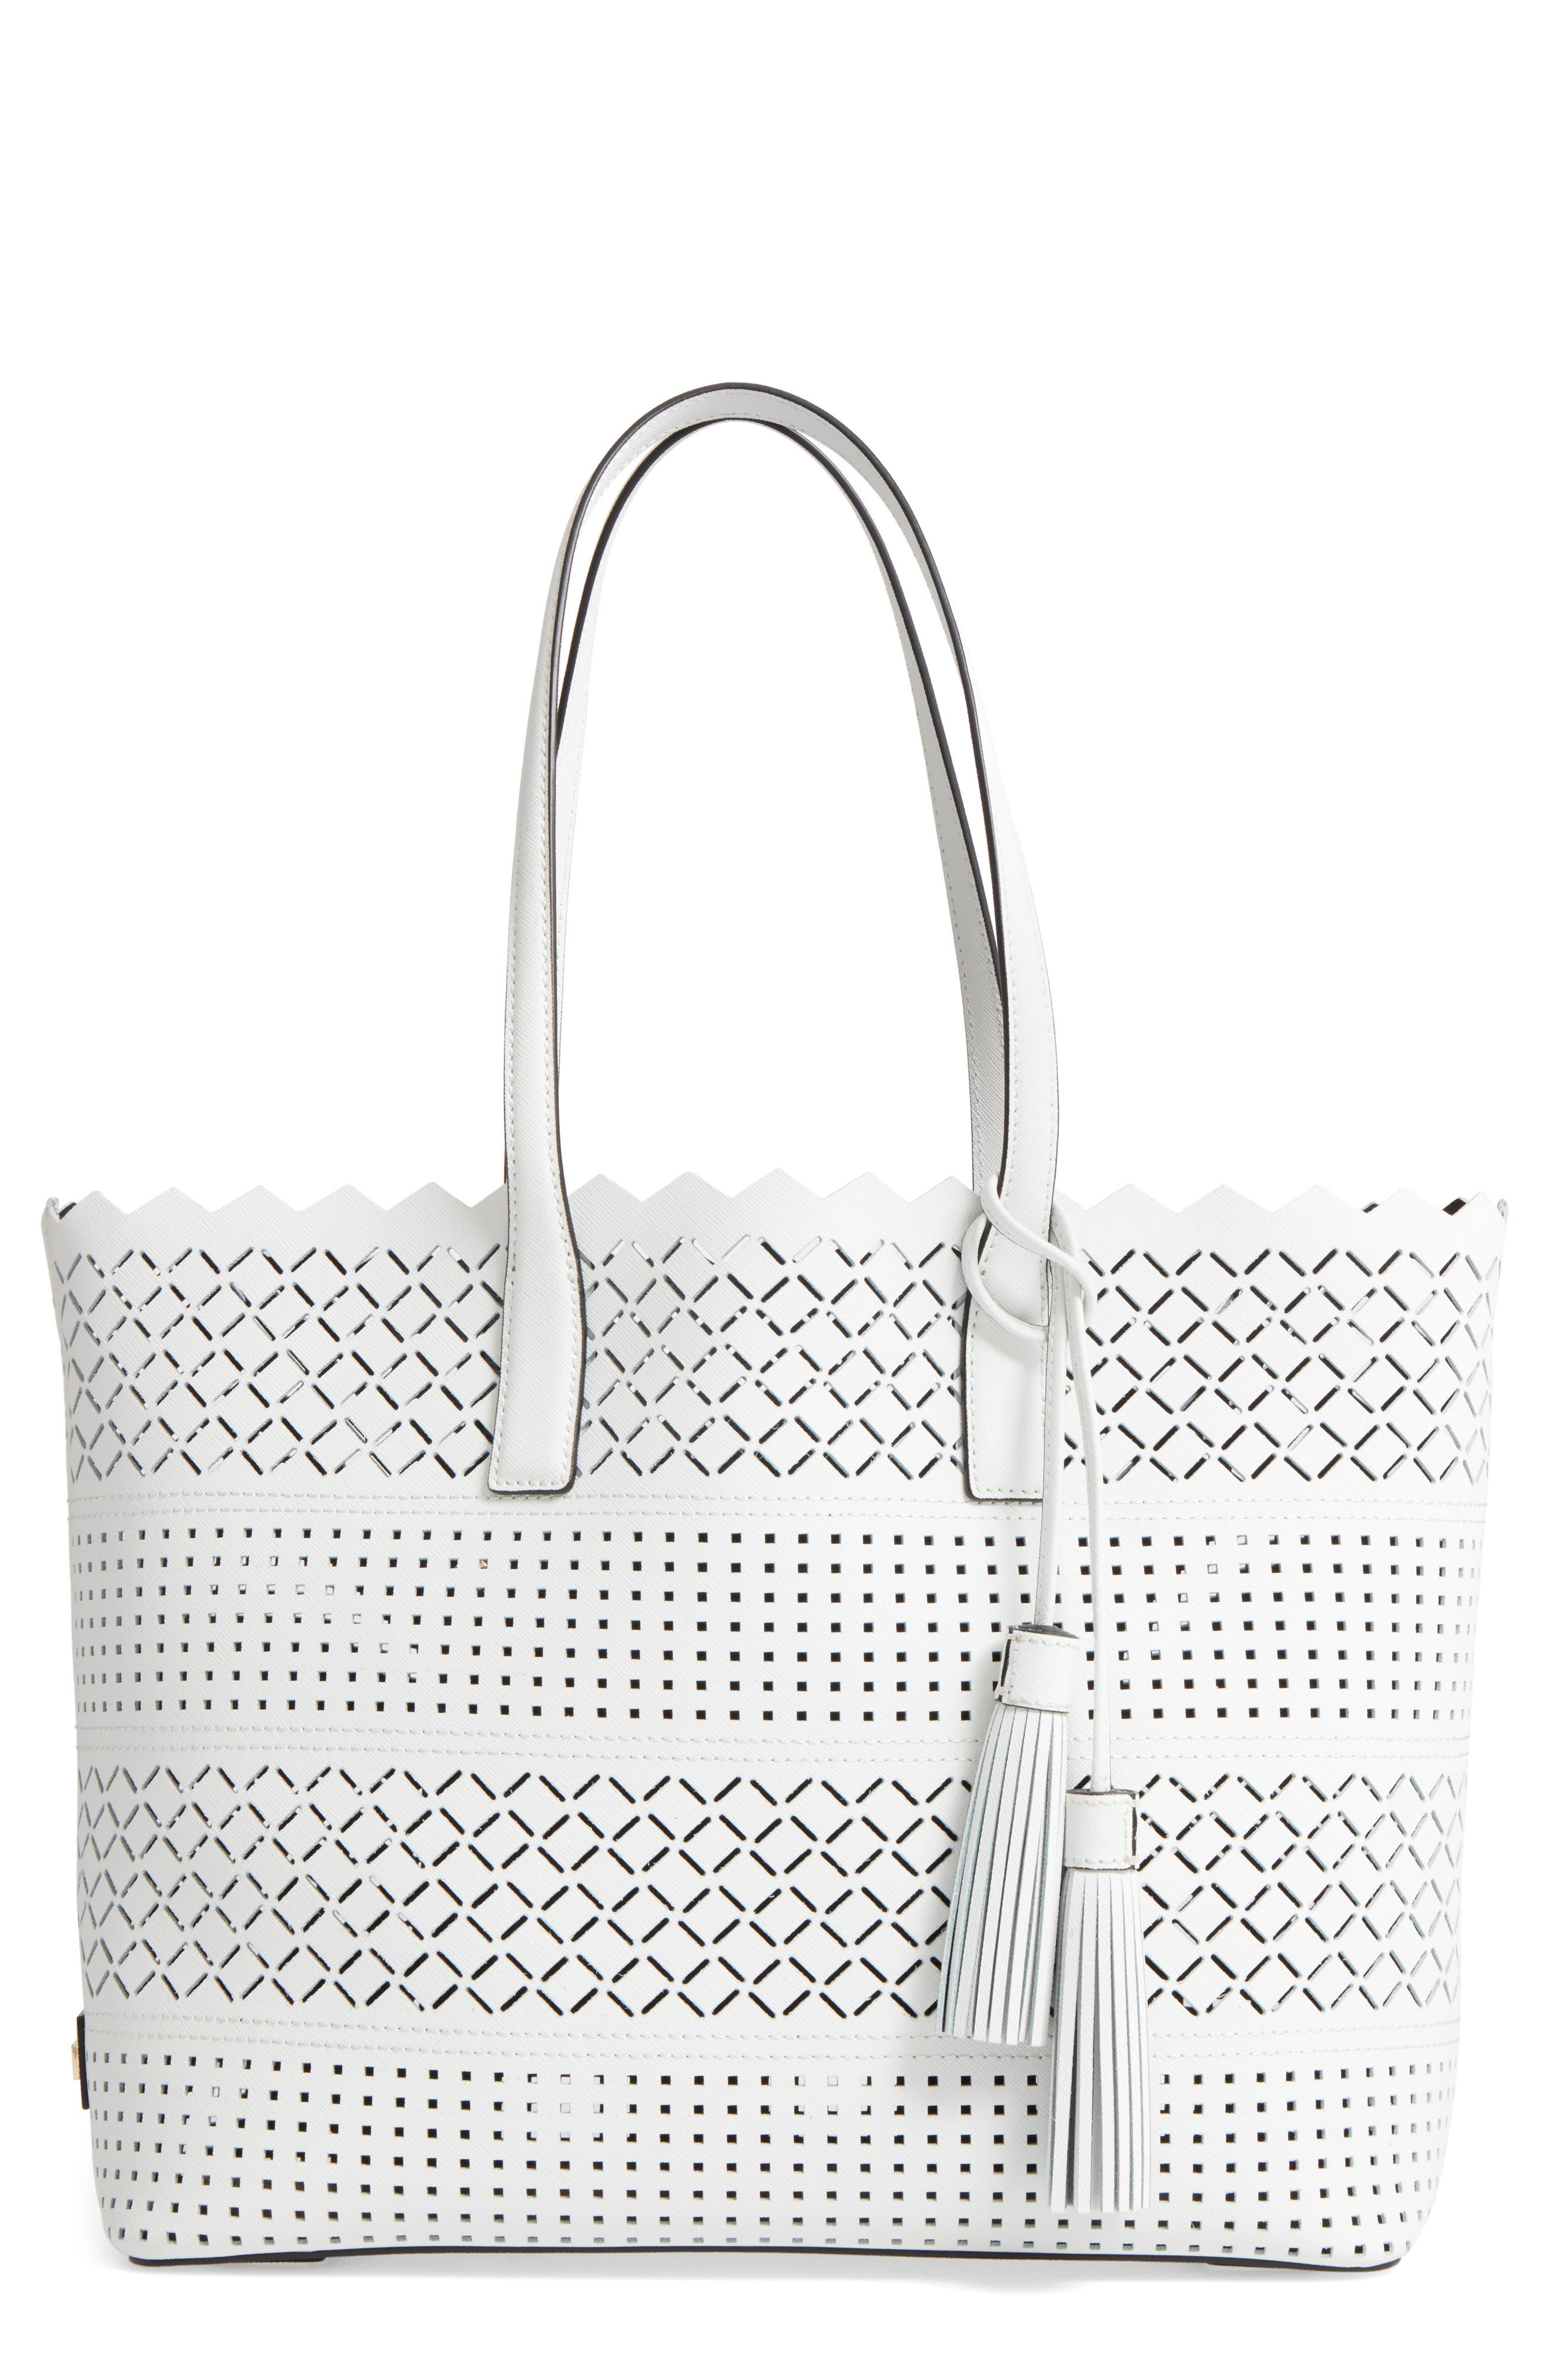 MILLY Laser Perforated Leather Tote